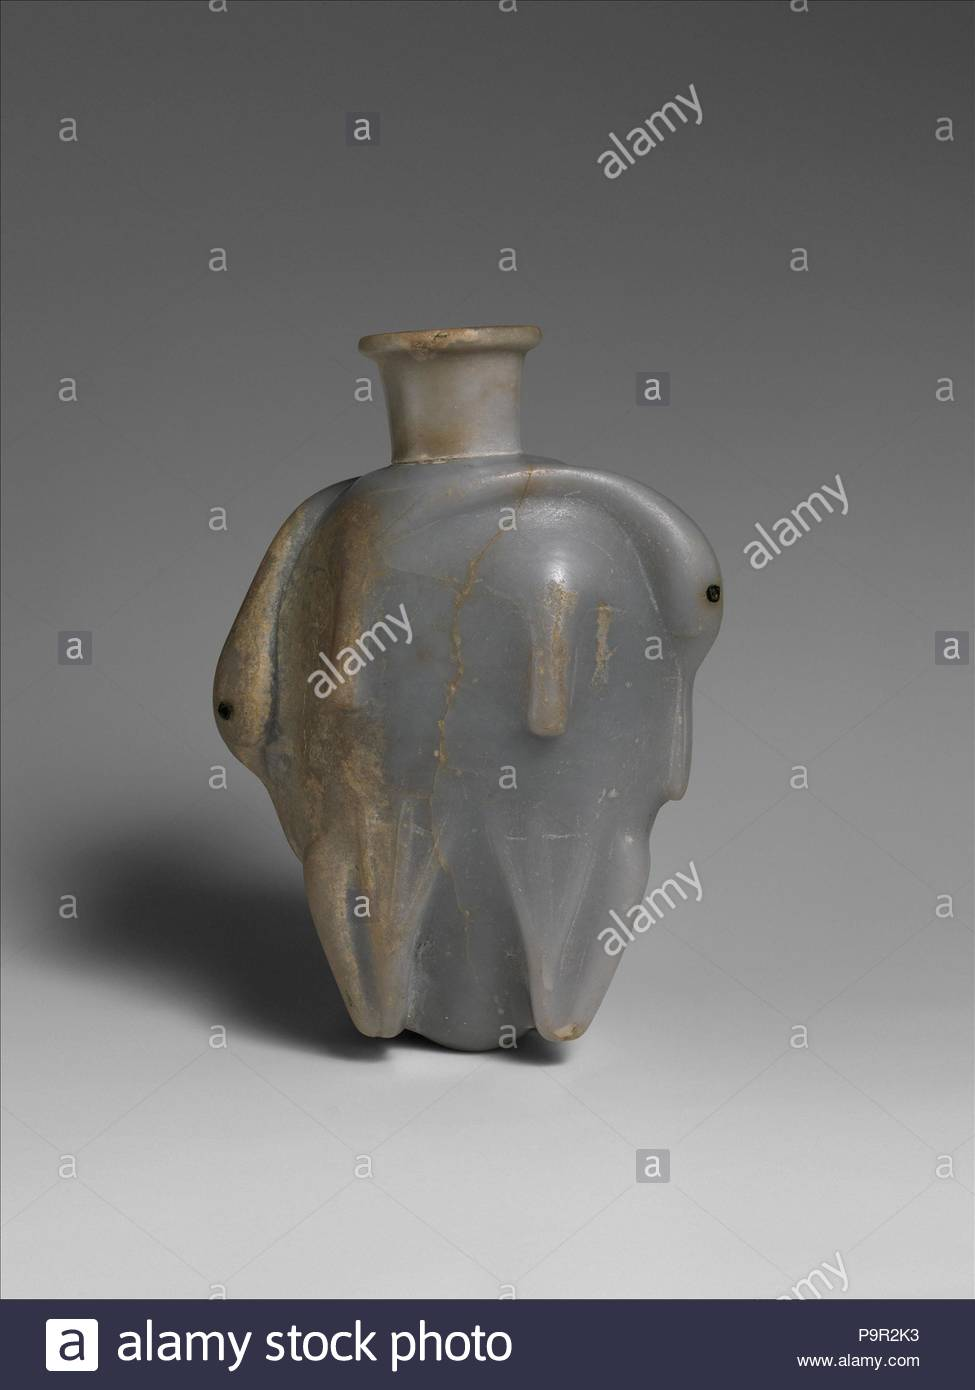 Vase, Middle Kingdom, Dynasty 13–17, ca. 1800–1550 B.C., From Egypt, Northern Upper Egypt, Abydos, Garstang excavations, 1907, Anhydrite, h. 12.5 cm (4 15/16 in). - Stock Image